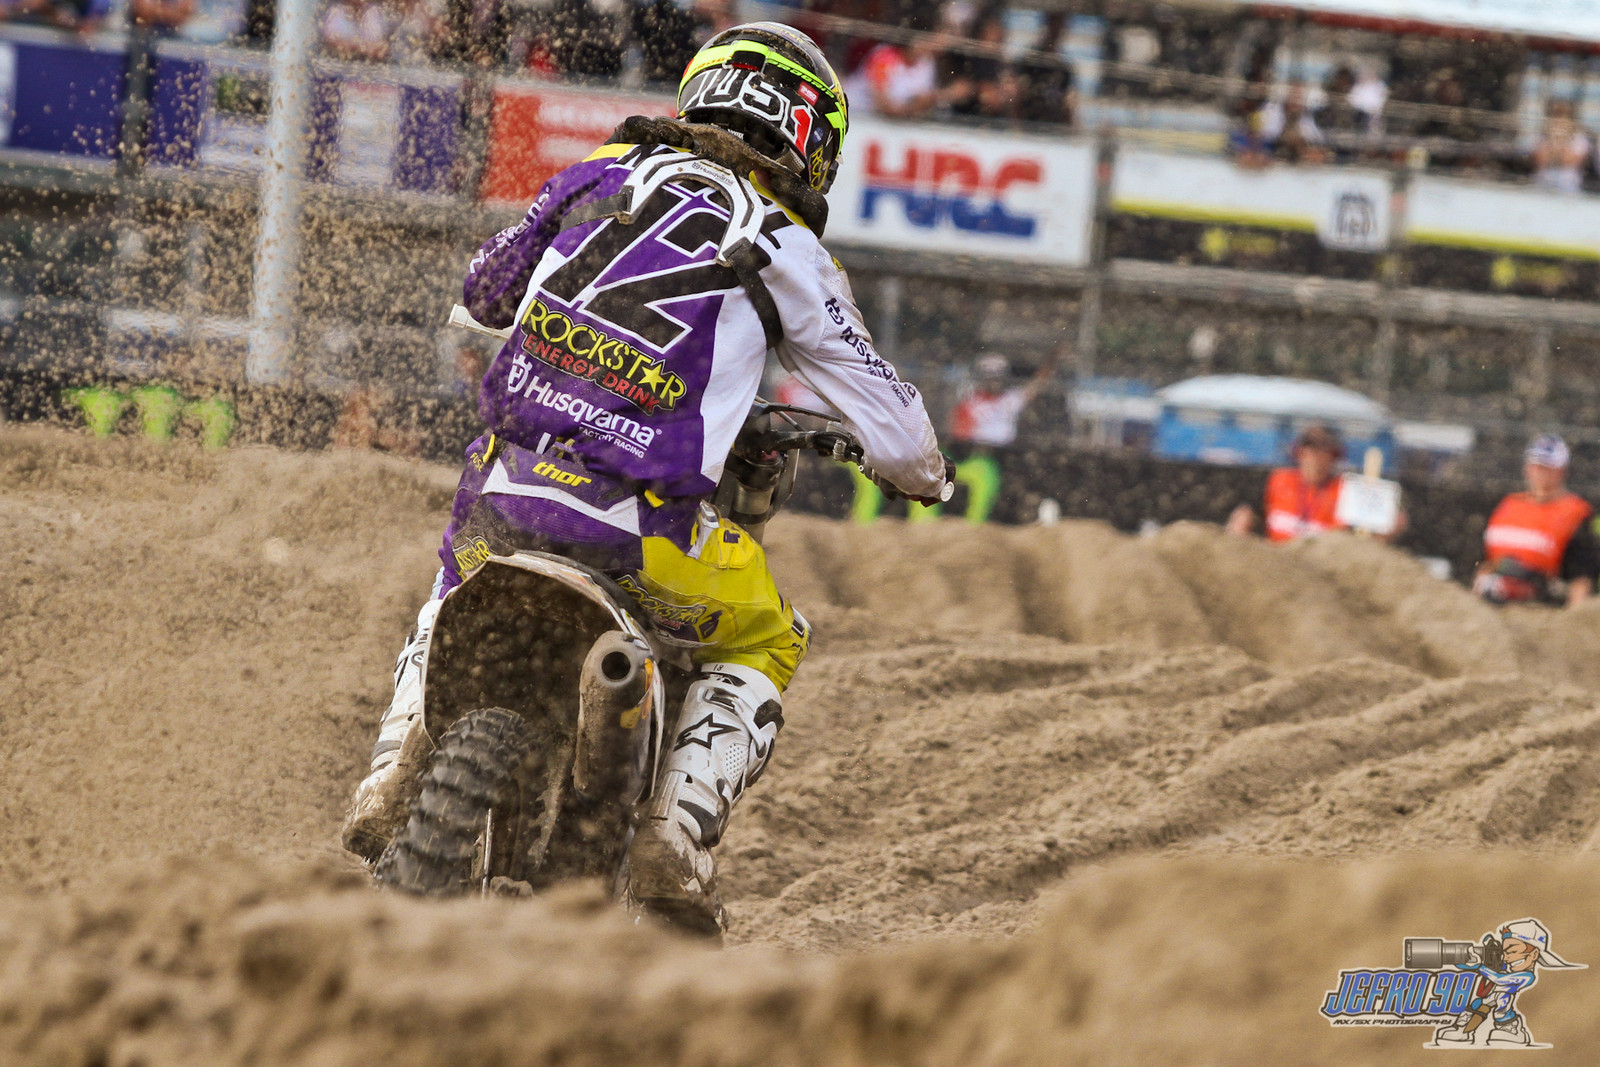 Max Nagl - Photo Gallery: MXGP of the Netherlands - Motocross Pictures - Vital MX